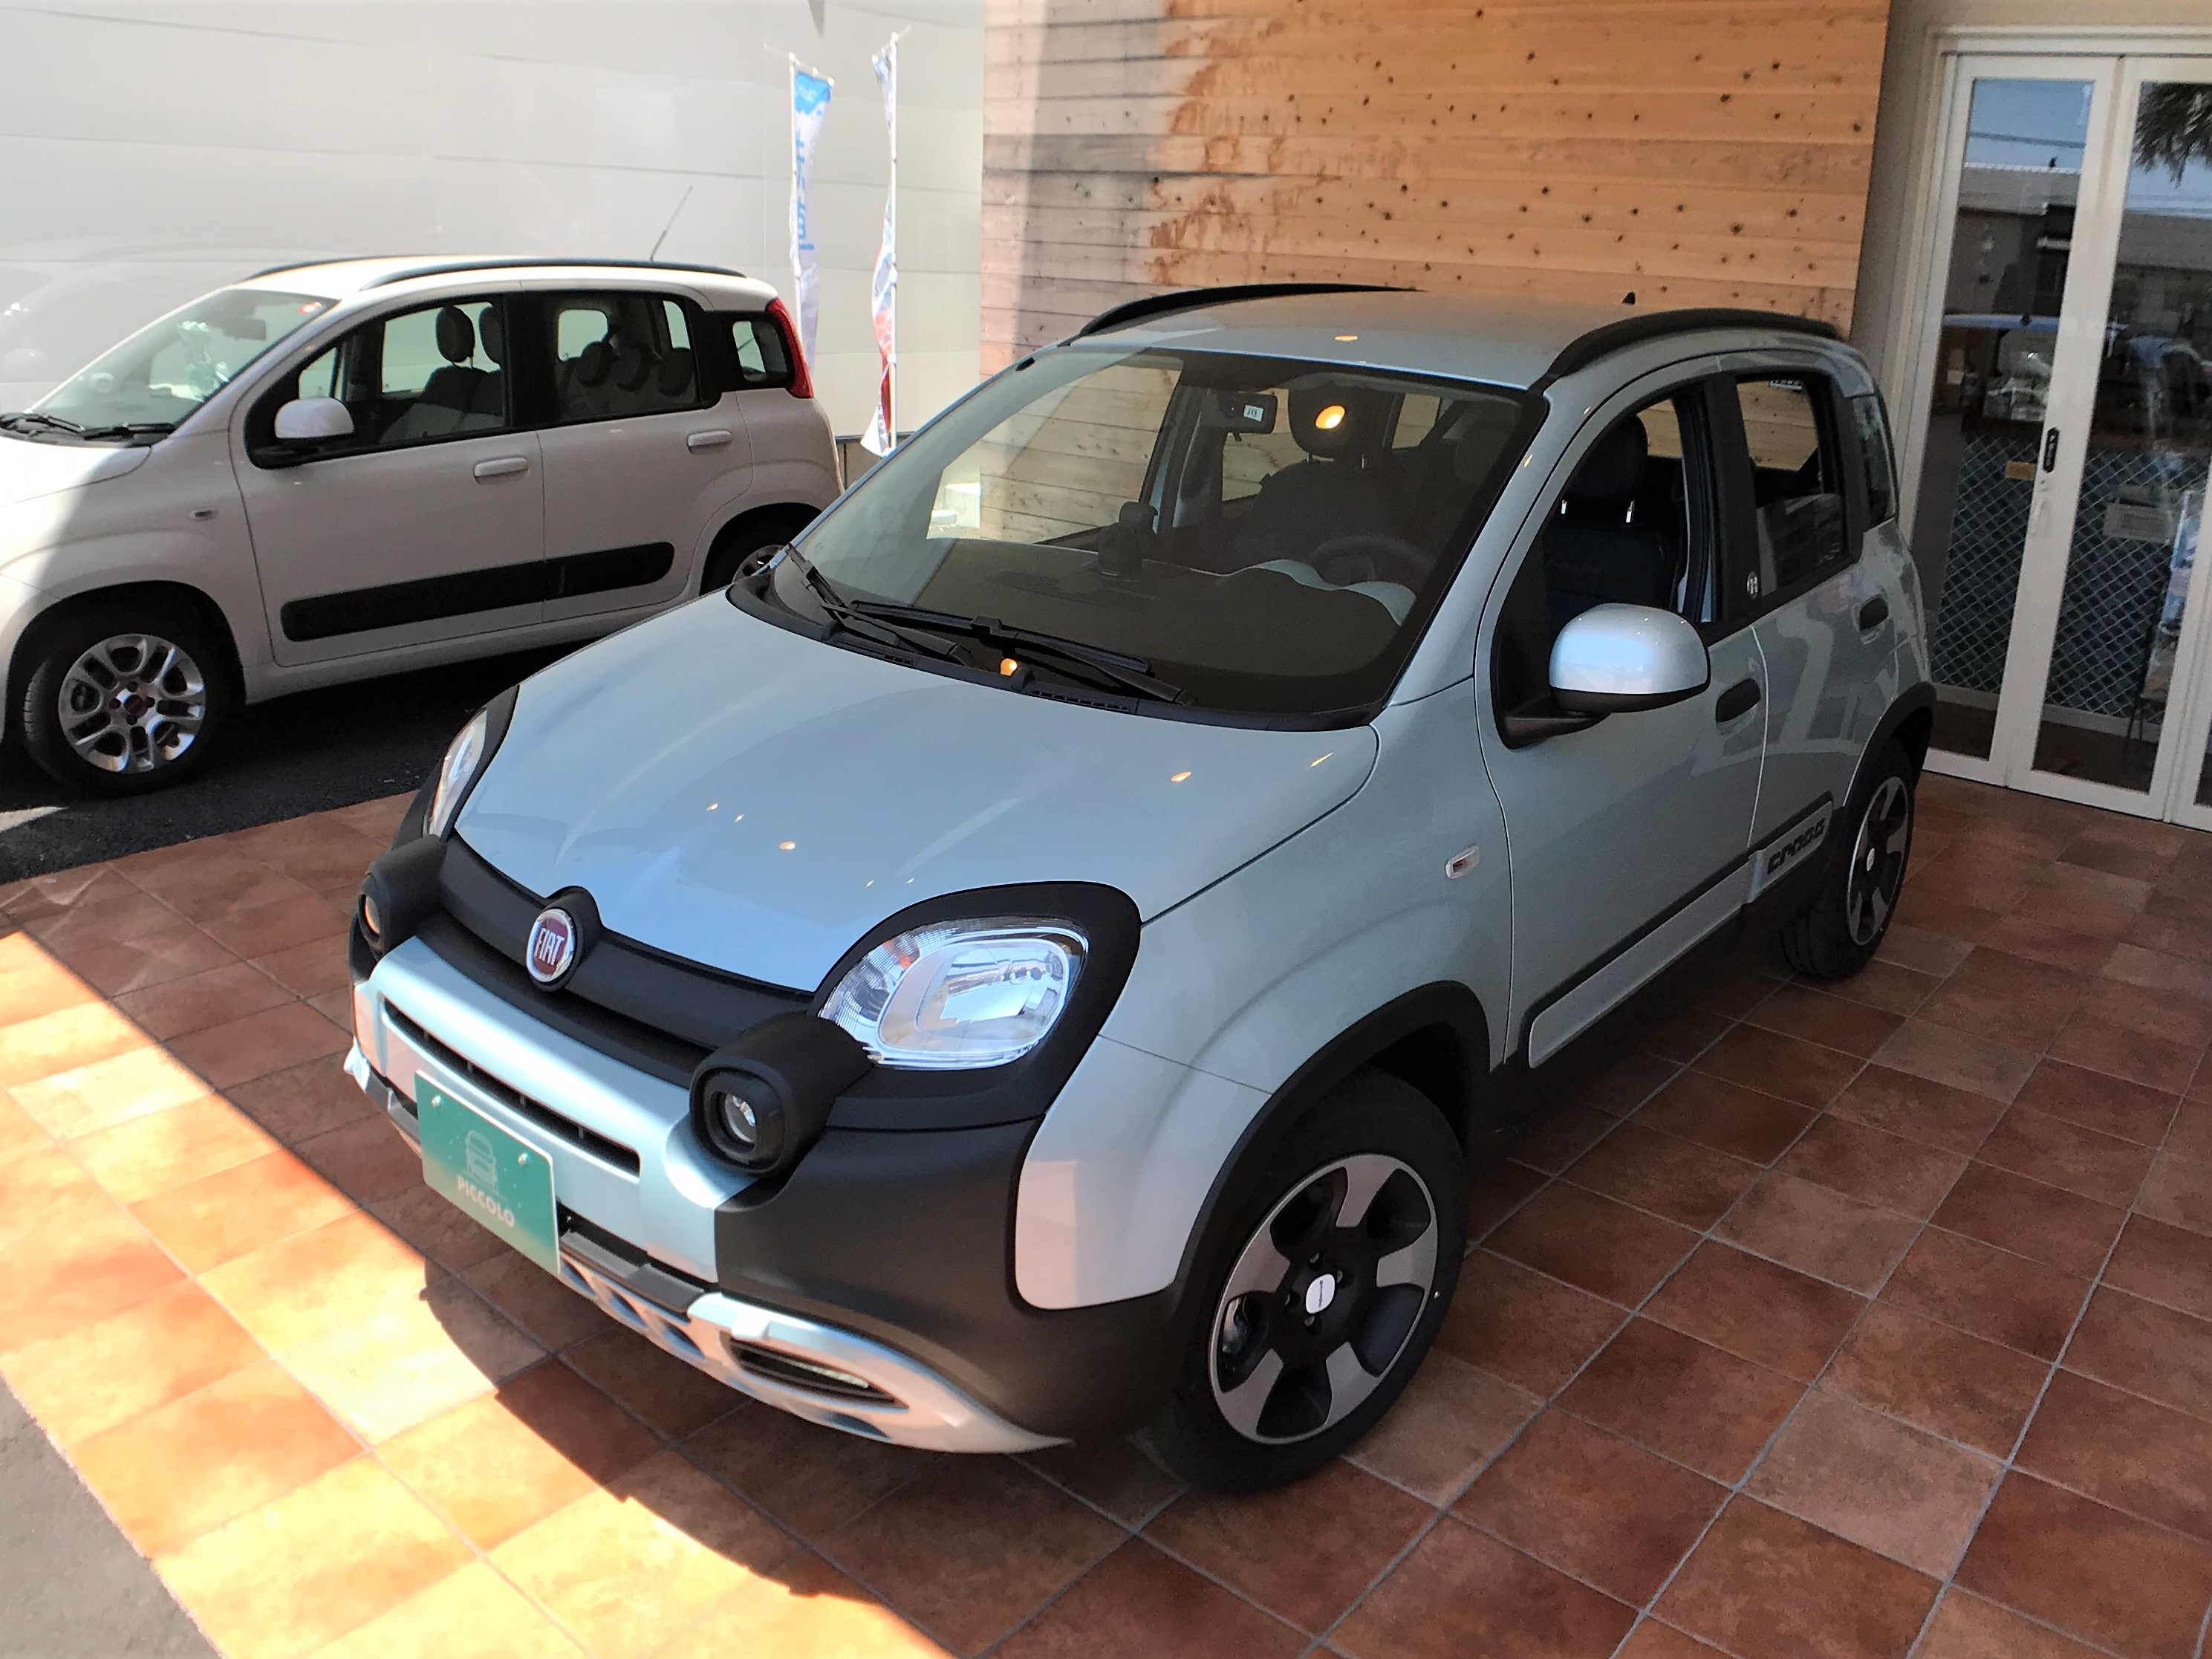 FIAT PANDA GSE S&S HYBRID 2×4 M/T LUNCH EDITION